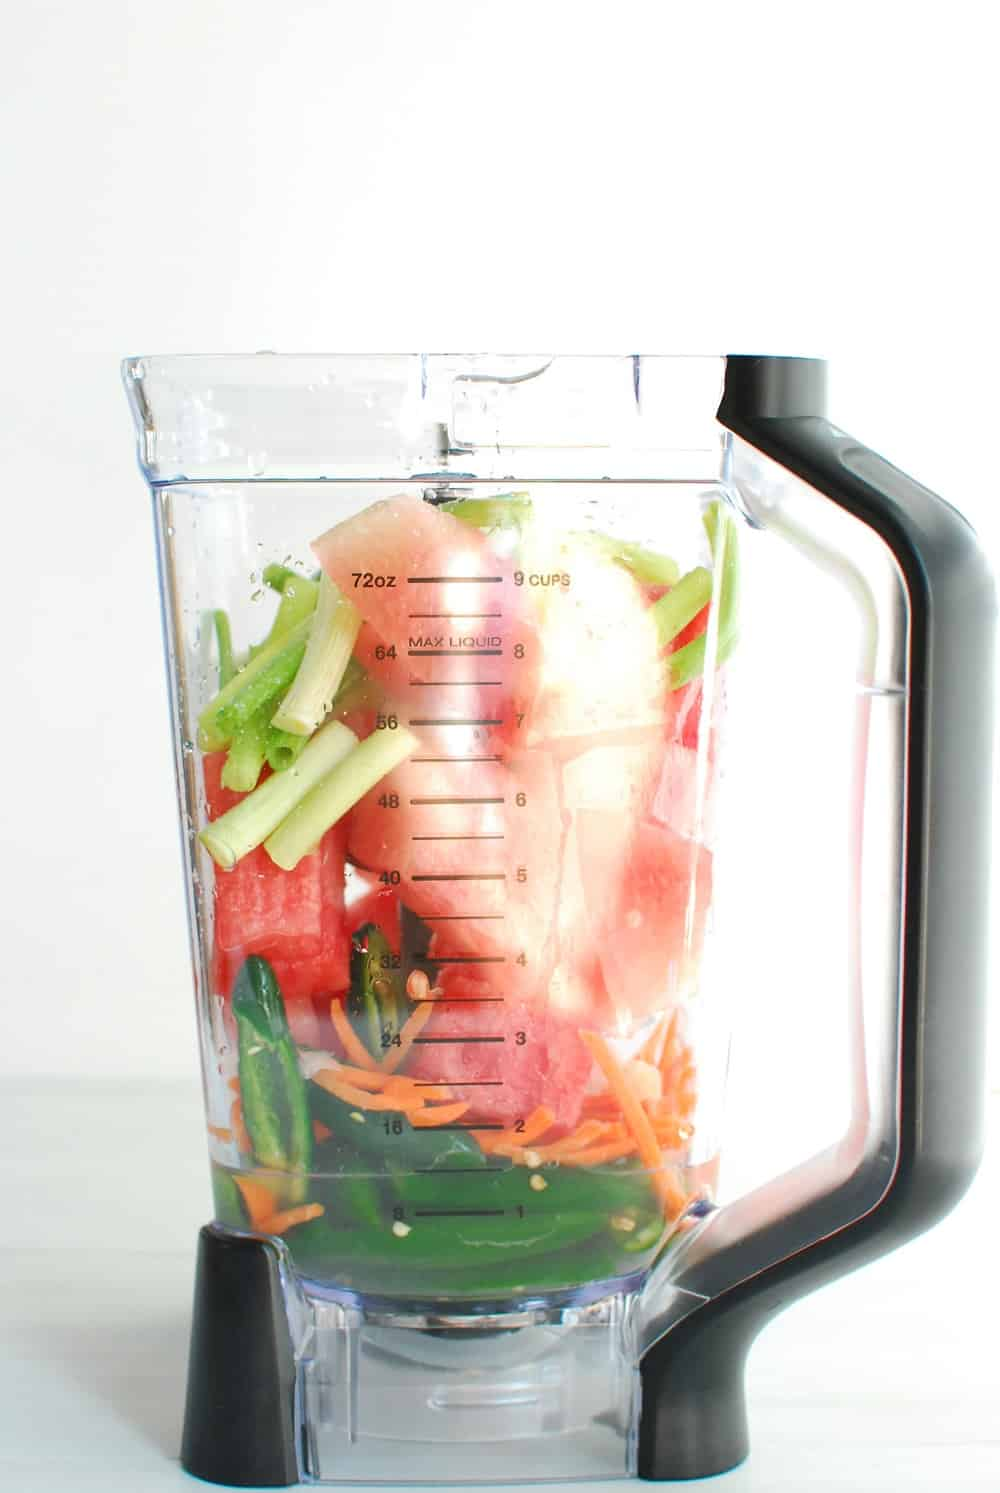 a blender full of watermelon, peppers, scallions, and other ingredients to make hot sauce